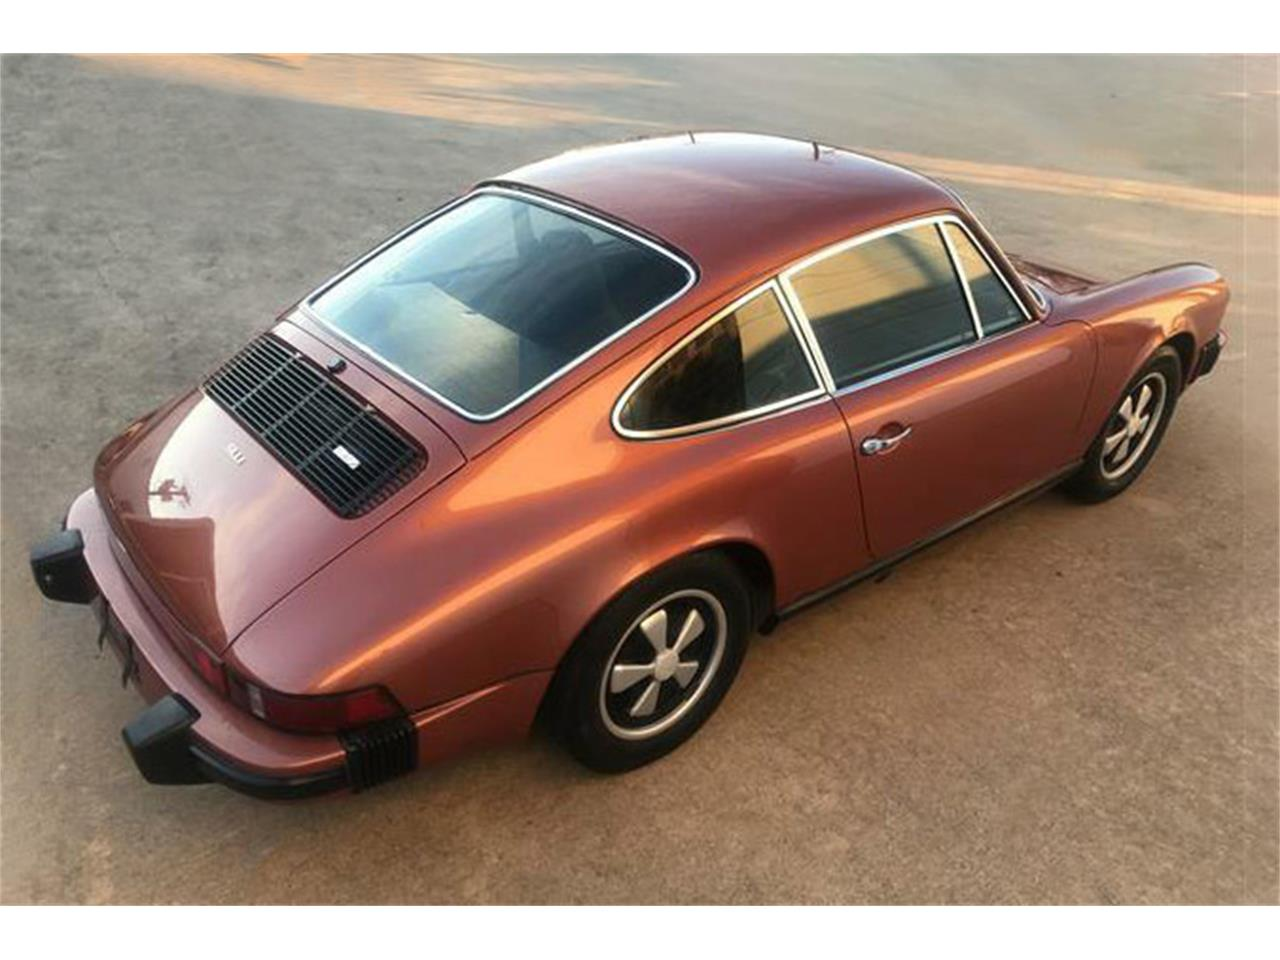 Large Picture of '74 Porsche 911 located in Connecticut Auction Vehicle Offered by Barrett-Jackson - QBBS